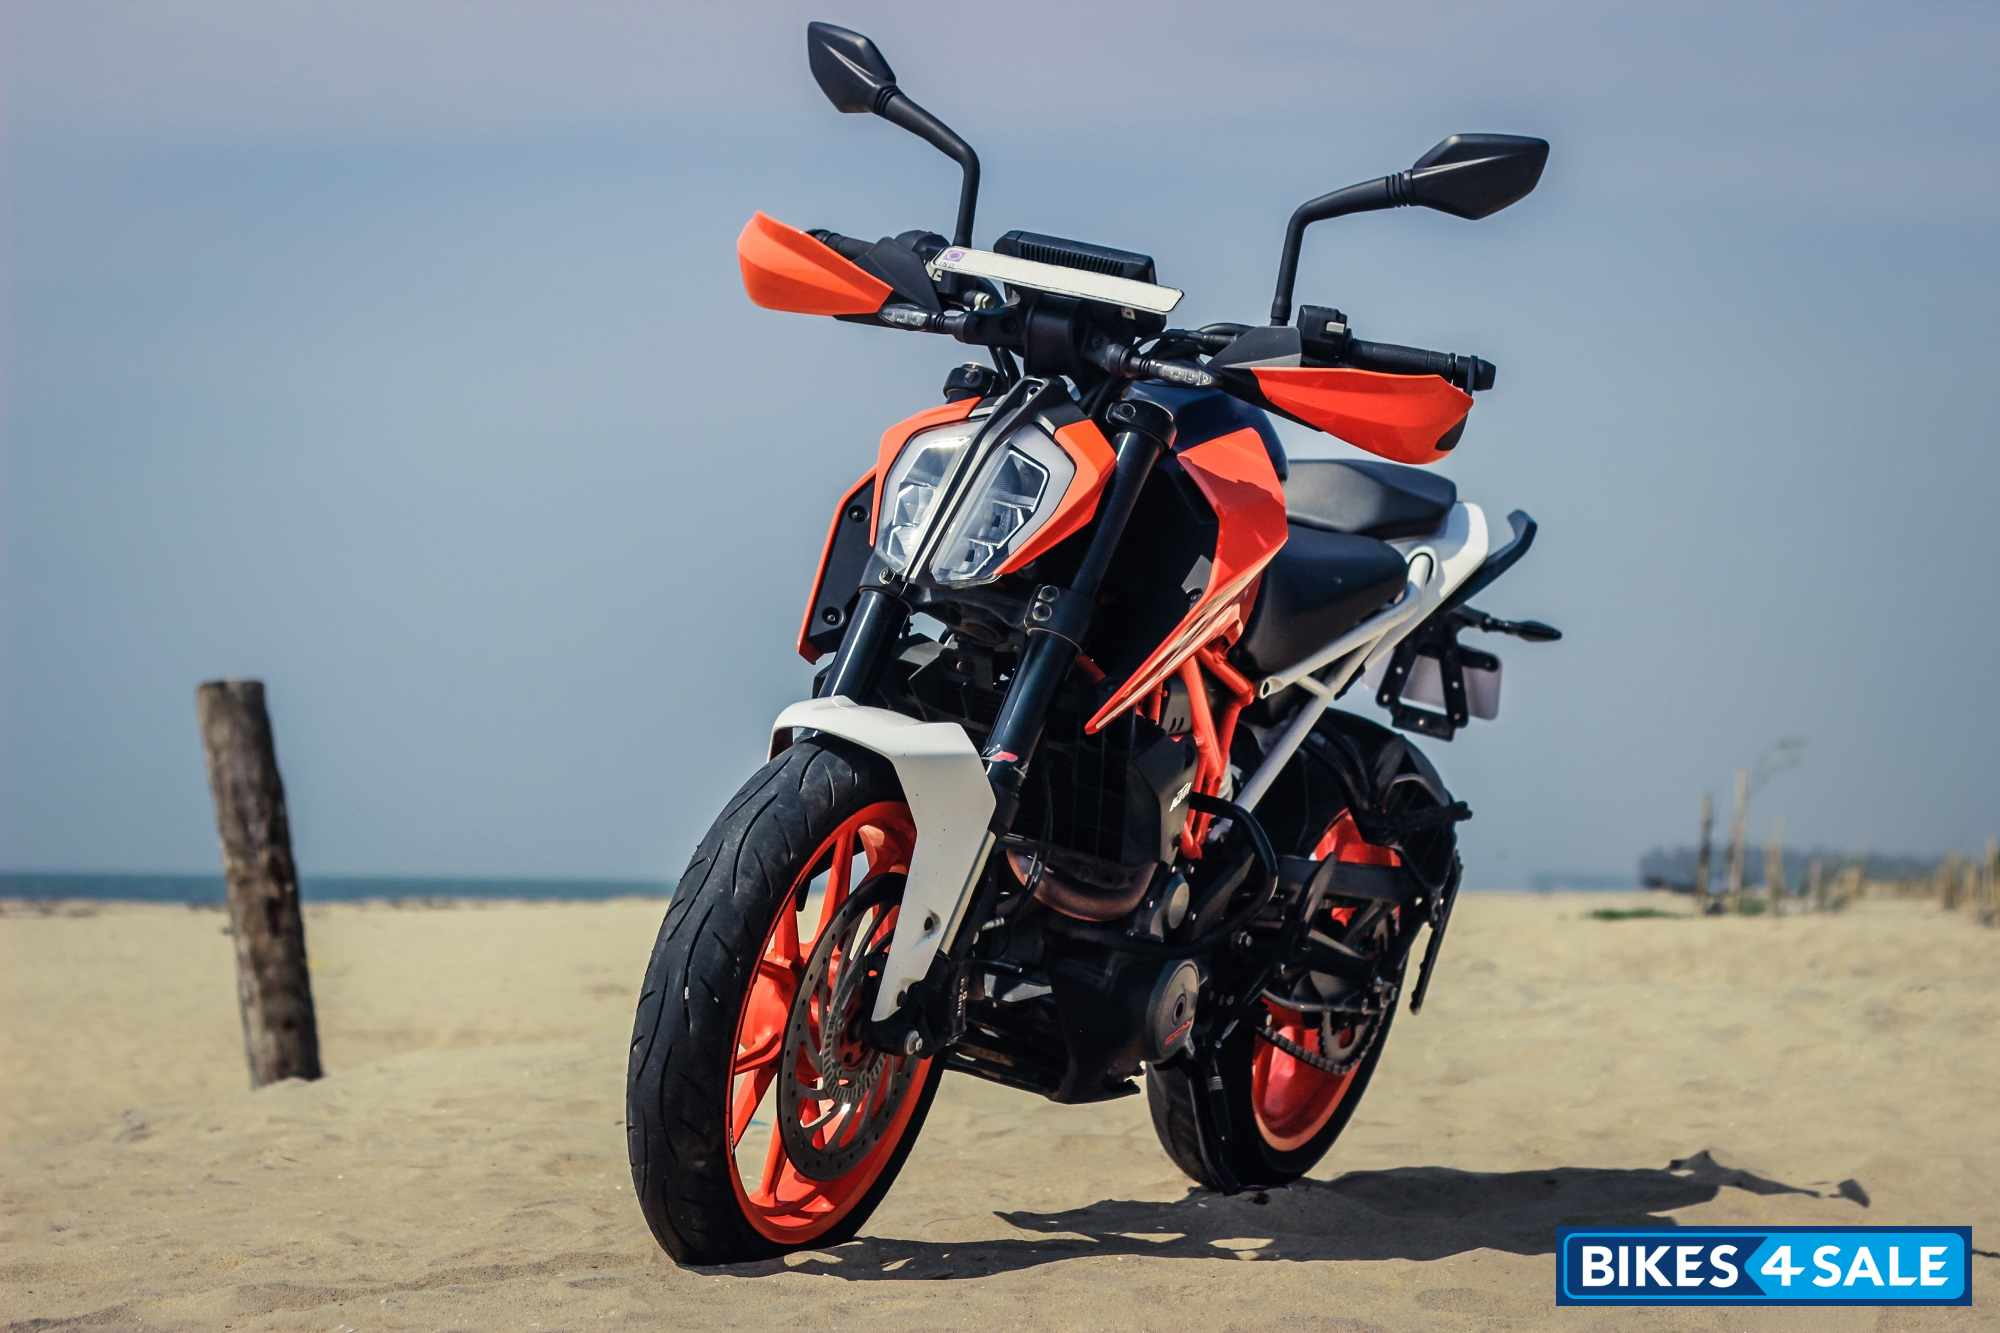 Ktm Rc 390 Price In India Lucknow